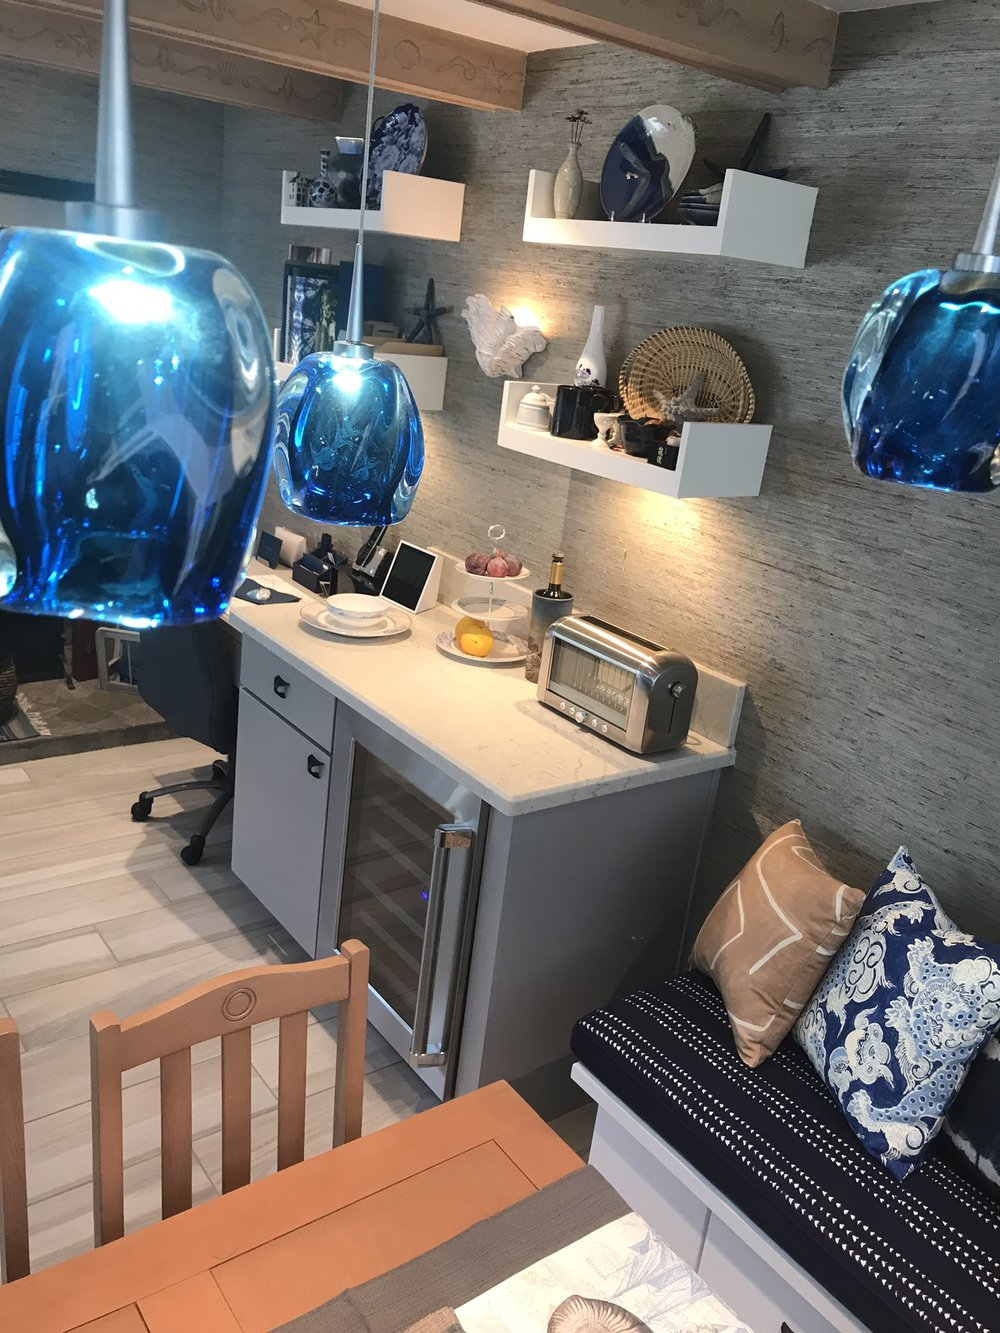 Great kitchen decor ideas in my interiors page. My favorite kitchen remodel of 2018! Beach theme tying in all colors from the sea!